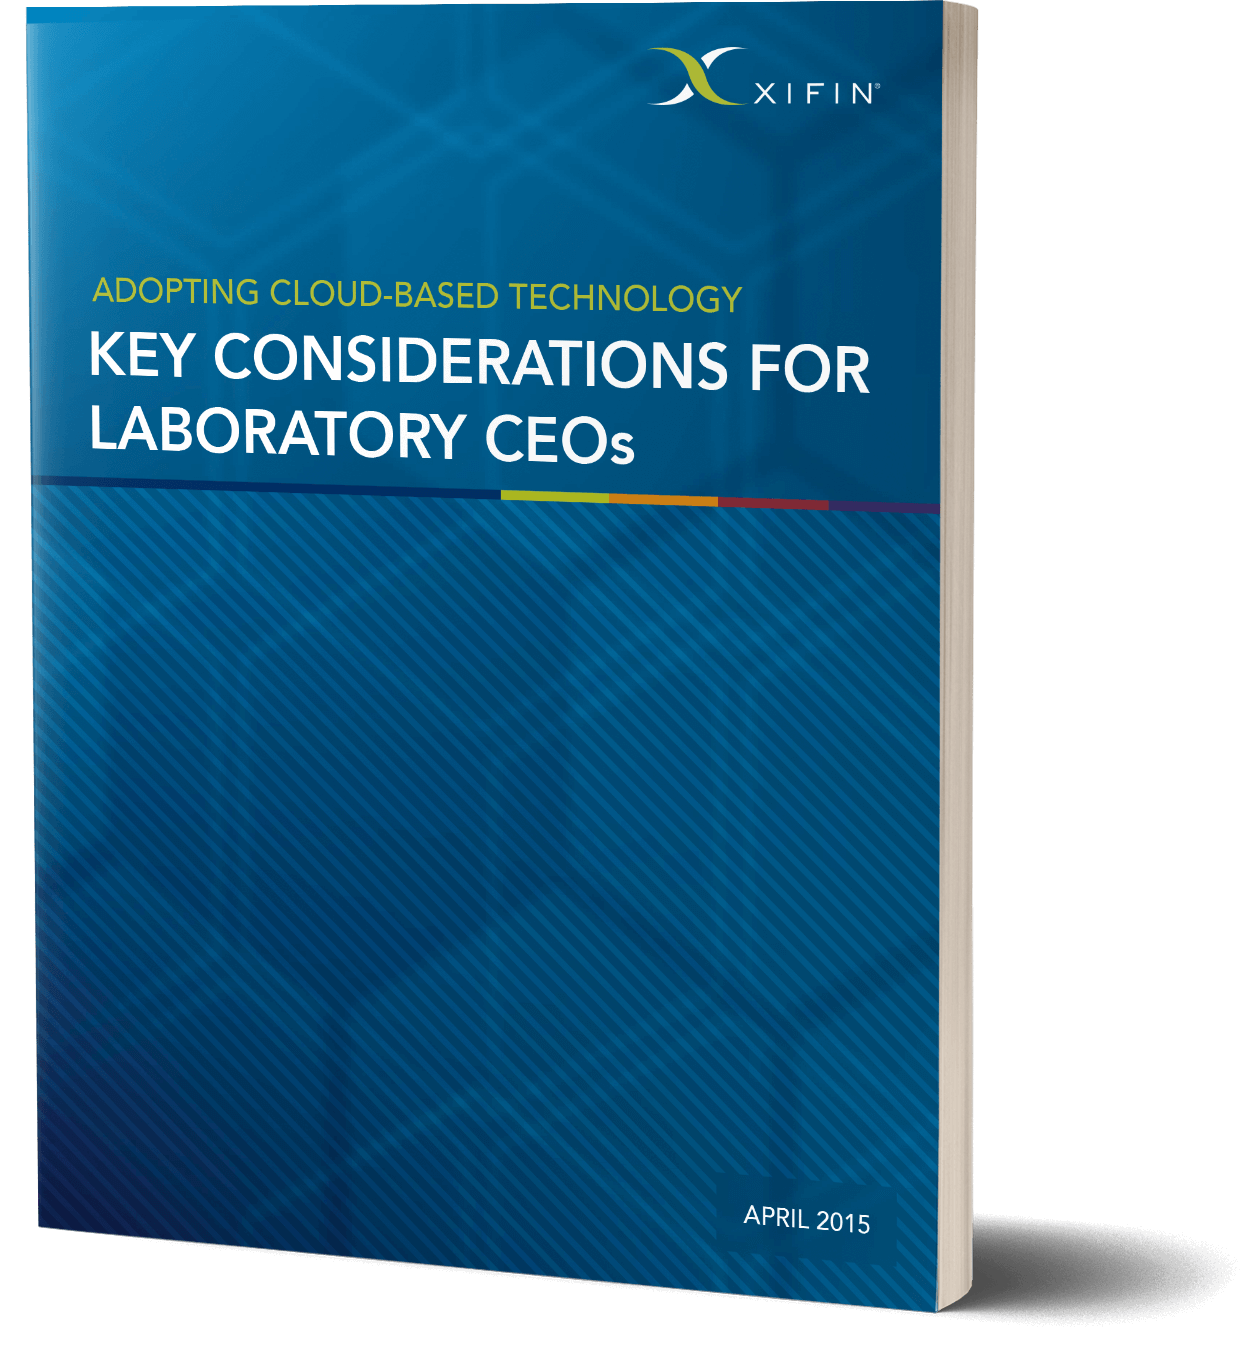 Adopting Cloud-Based Technology: Key Considerations for Laboratory CEOs